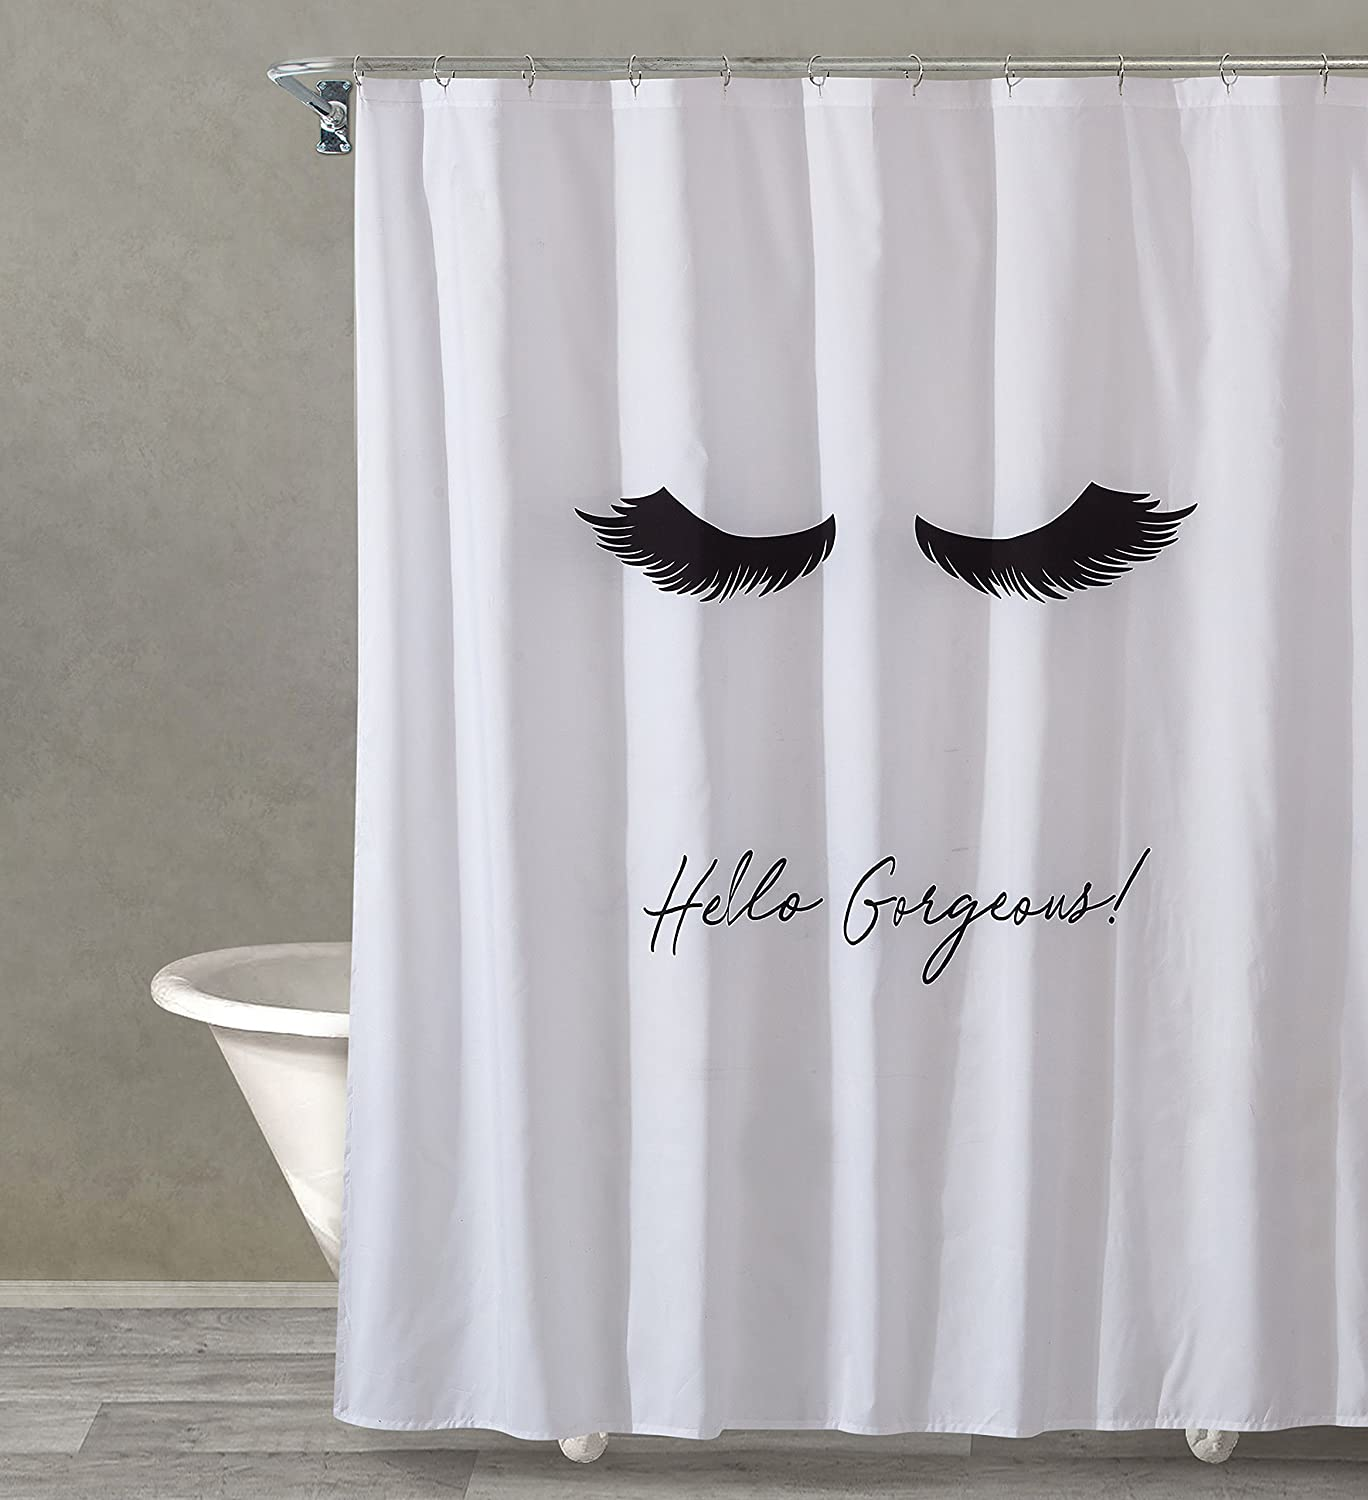 Style Quarters Lash Out Loud Shower Curtain Black Lashes And Script Hello Gorgeous On White Ground Polyester Buttonhole Machine Washable 1pc 72 W X 72 L Kitchen Dining